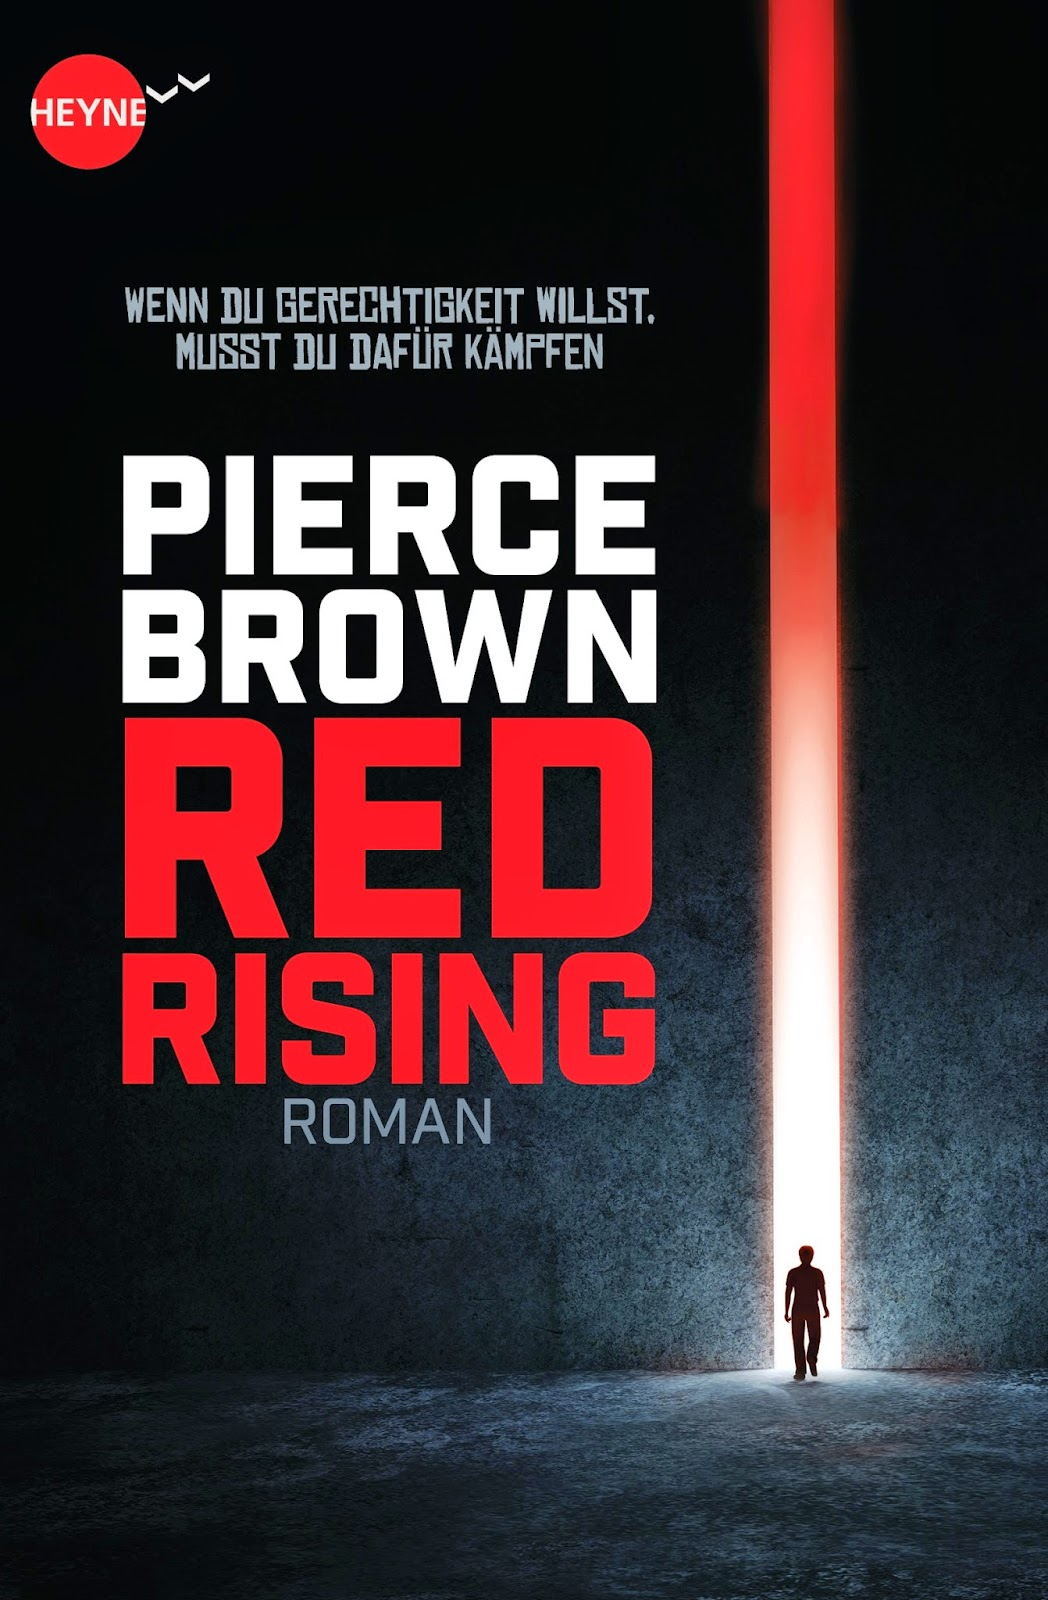 http://www.randomhouse.de/Presse/Buch/Red-Rising-Roman/Pierce-Brown/pr466938.rhd?pub=30700&men=1&mid=5